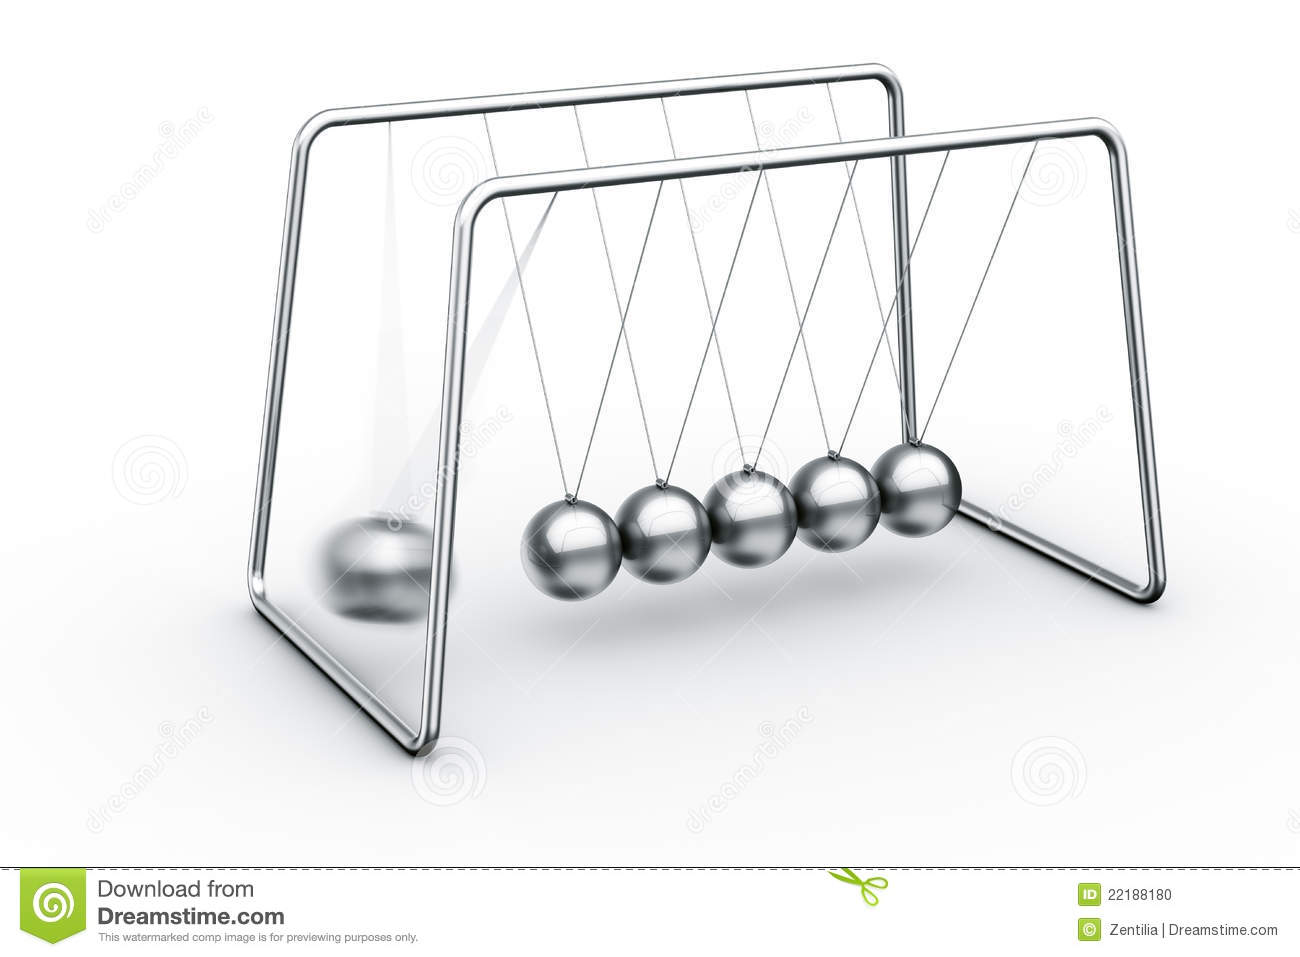 Newtons Cradle Stock Photo.